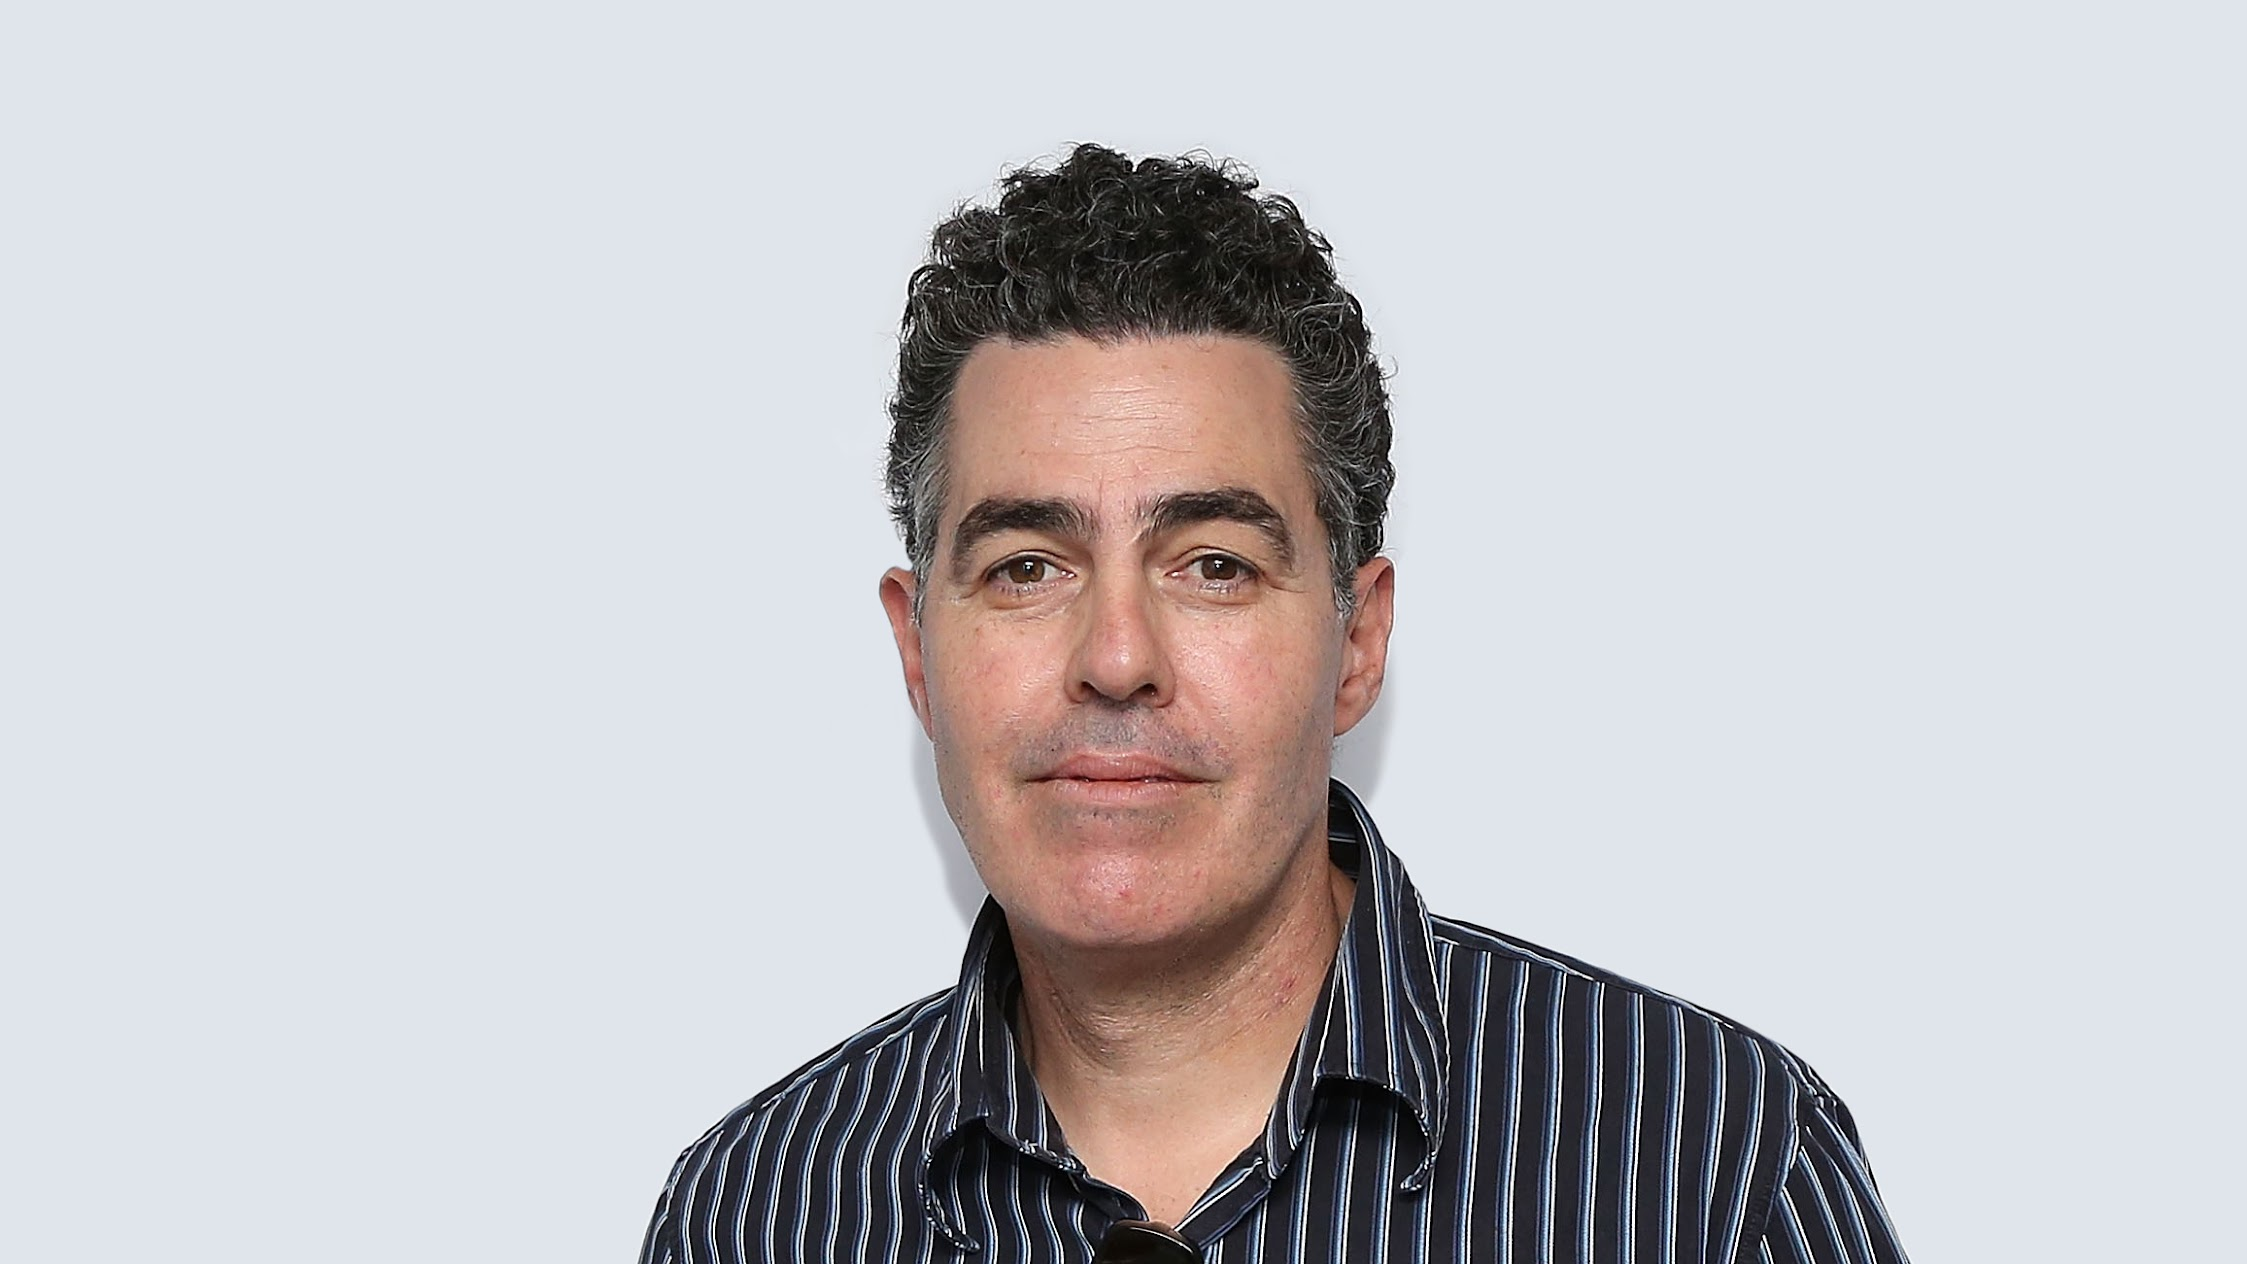 adam carolla project Starring: adam carolla, billy hartman, jimmy kimmel - the adam carolla project is an american reality series featuring the comedian adam carolla the series aired on tlc from october to.